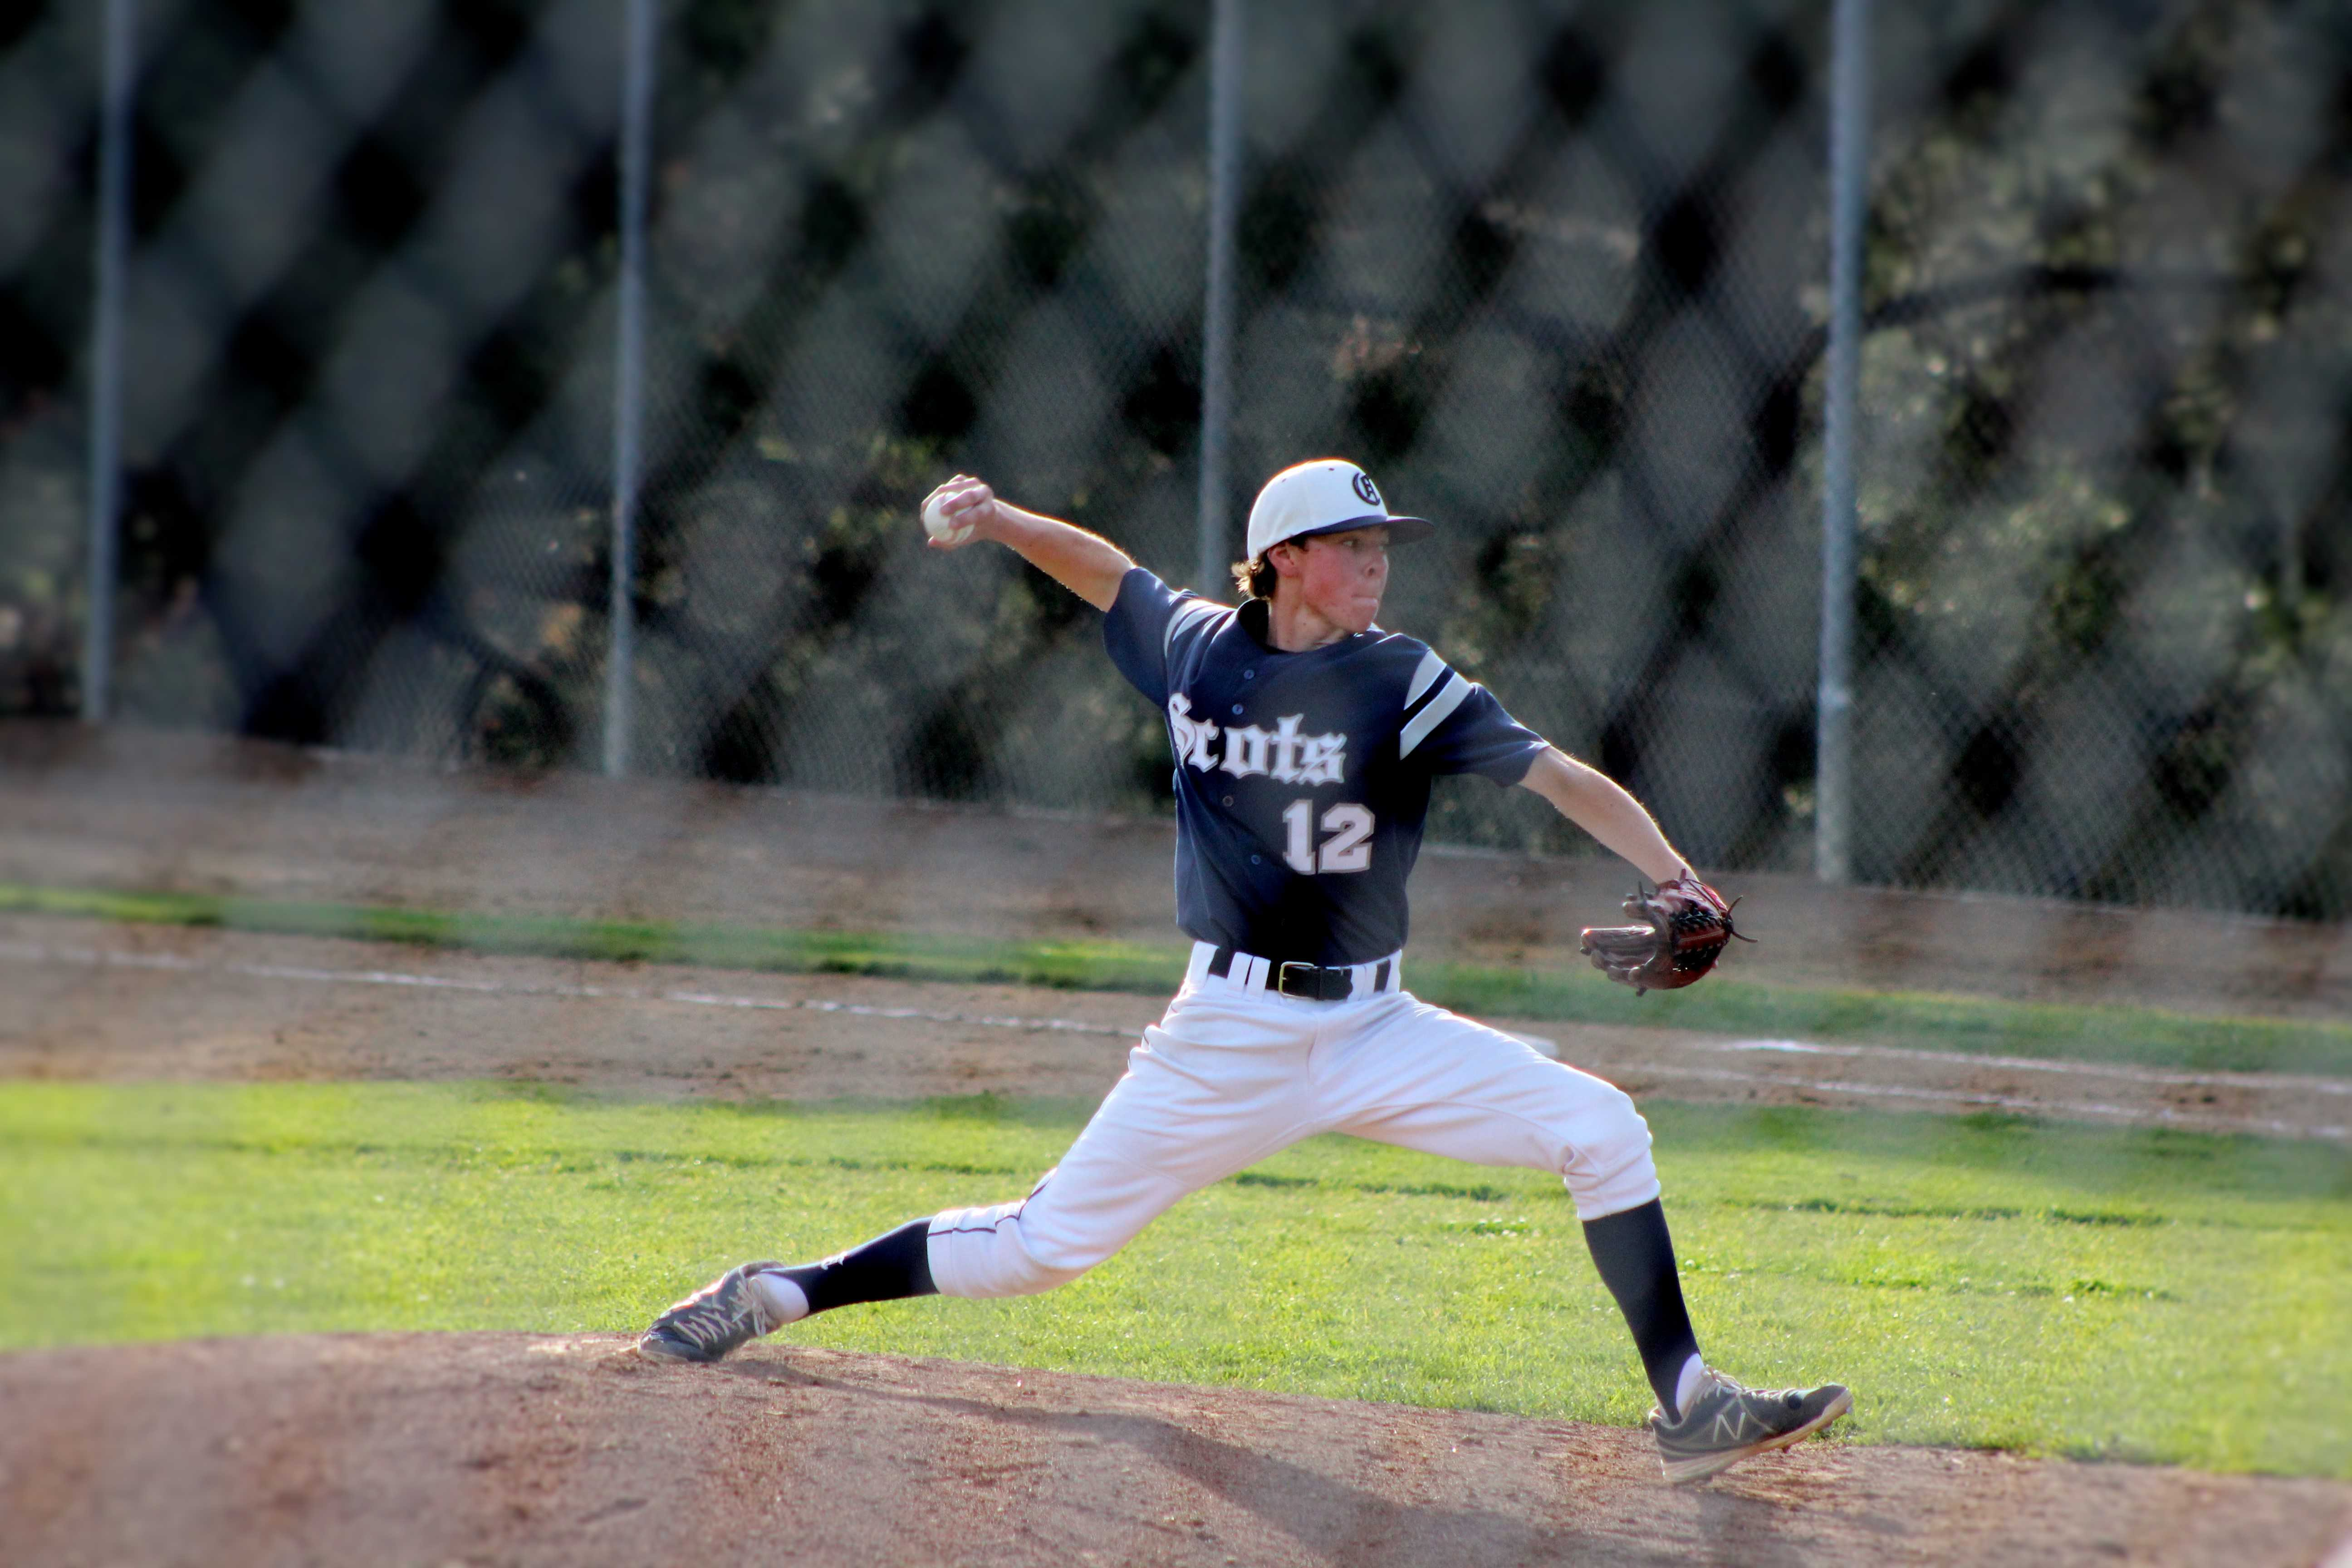 Pitcher Ryan Giberton throwing a strike for the second out of the inning.